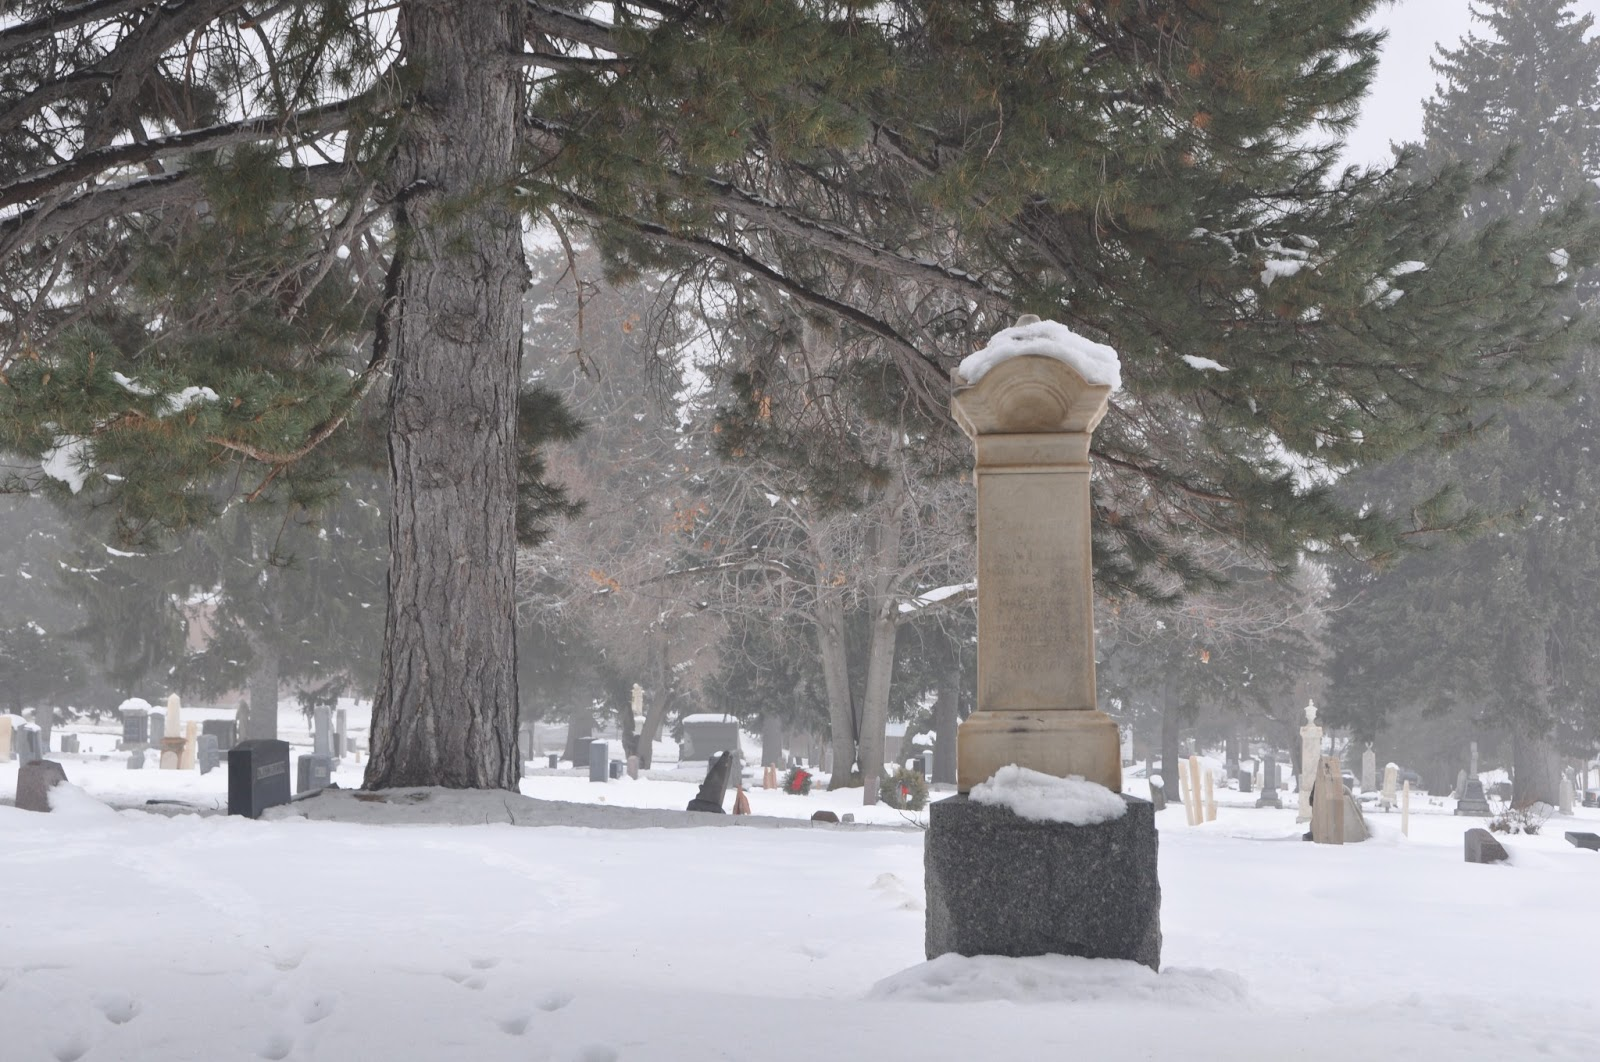 salt lake city, salt lake city cemetery, cemetery, headstone, cemetery in the winter, vintage headstone, fashion blog, fashion blogger, style blog, style blogger, mens fashion, mens fashion blog, mens style, mens style blog, womens style blog, anthropologie ootd blog, anthropologie ootd, anthropologie, ootd, mens ootd, womens ootd,